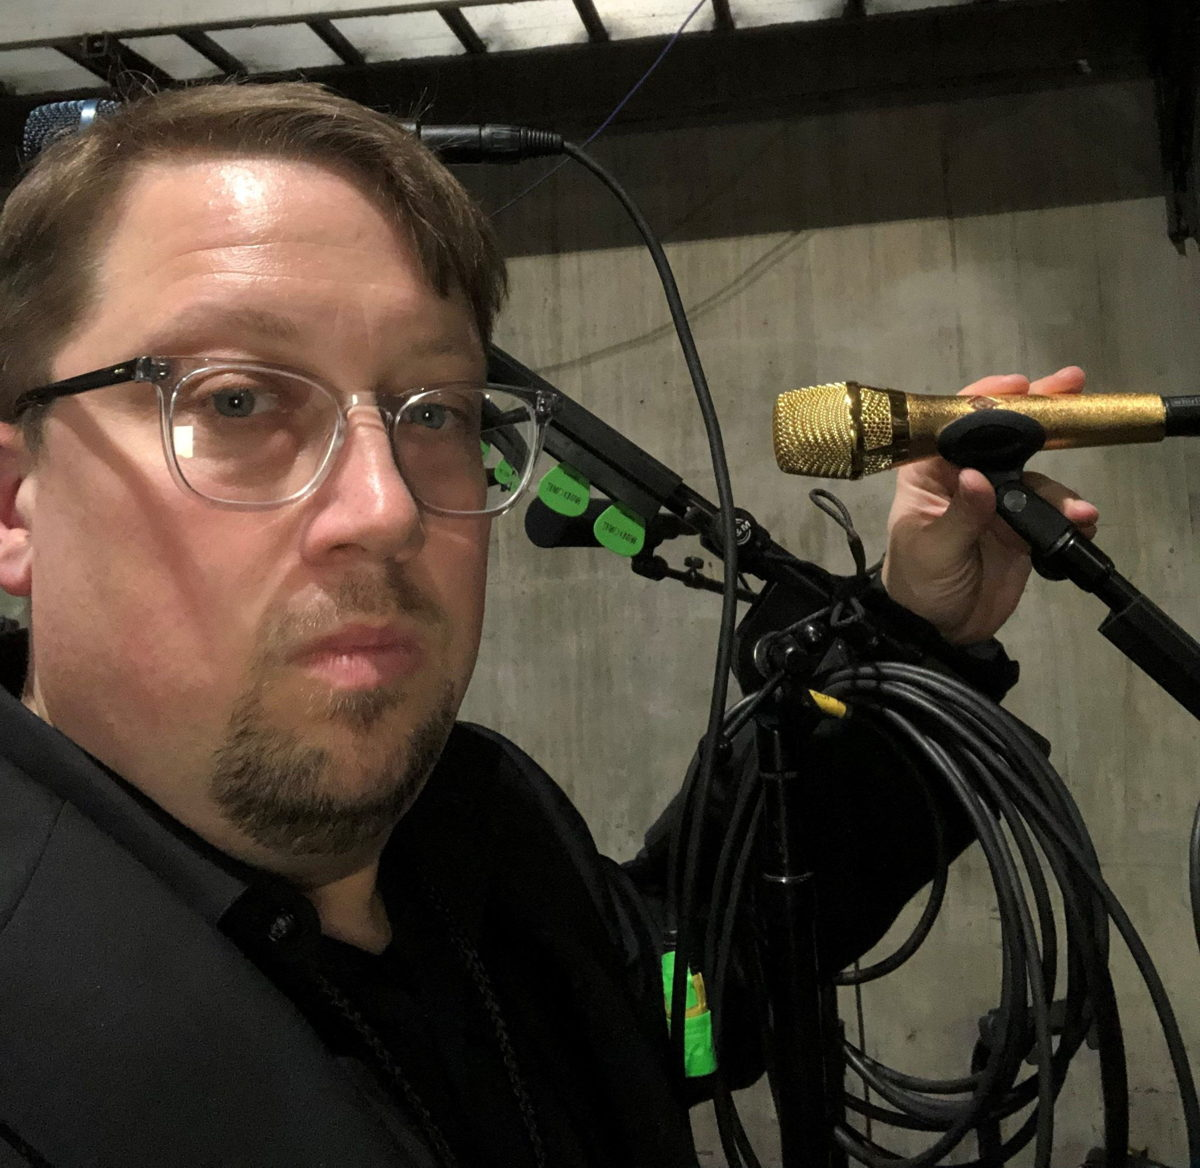 Sean Quackenbush, Front of House engineer for Brandi Carlile, pictured backstage at the 61st Annual Grammy Awards with the custom gold-colored Neumann KMS 105